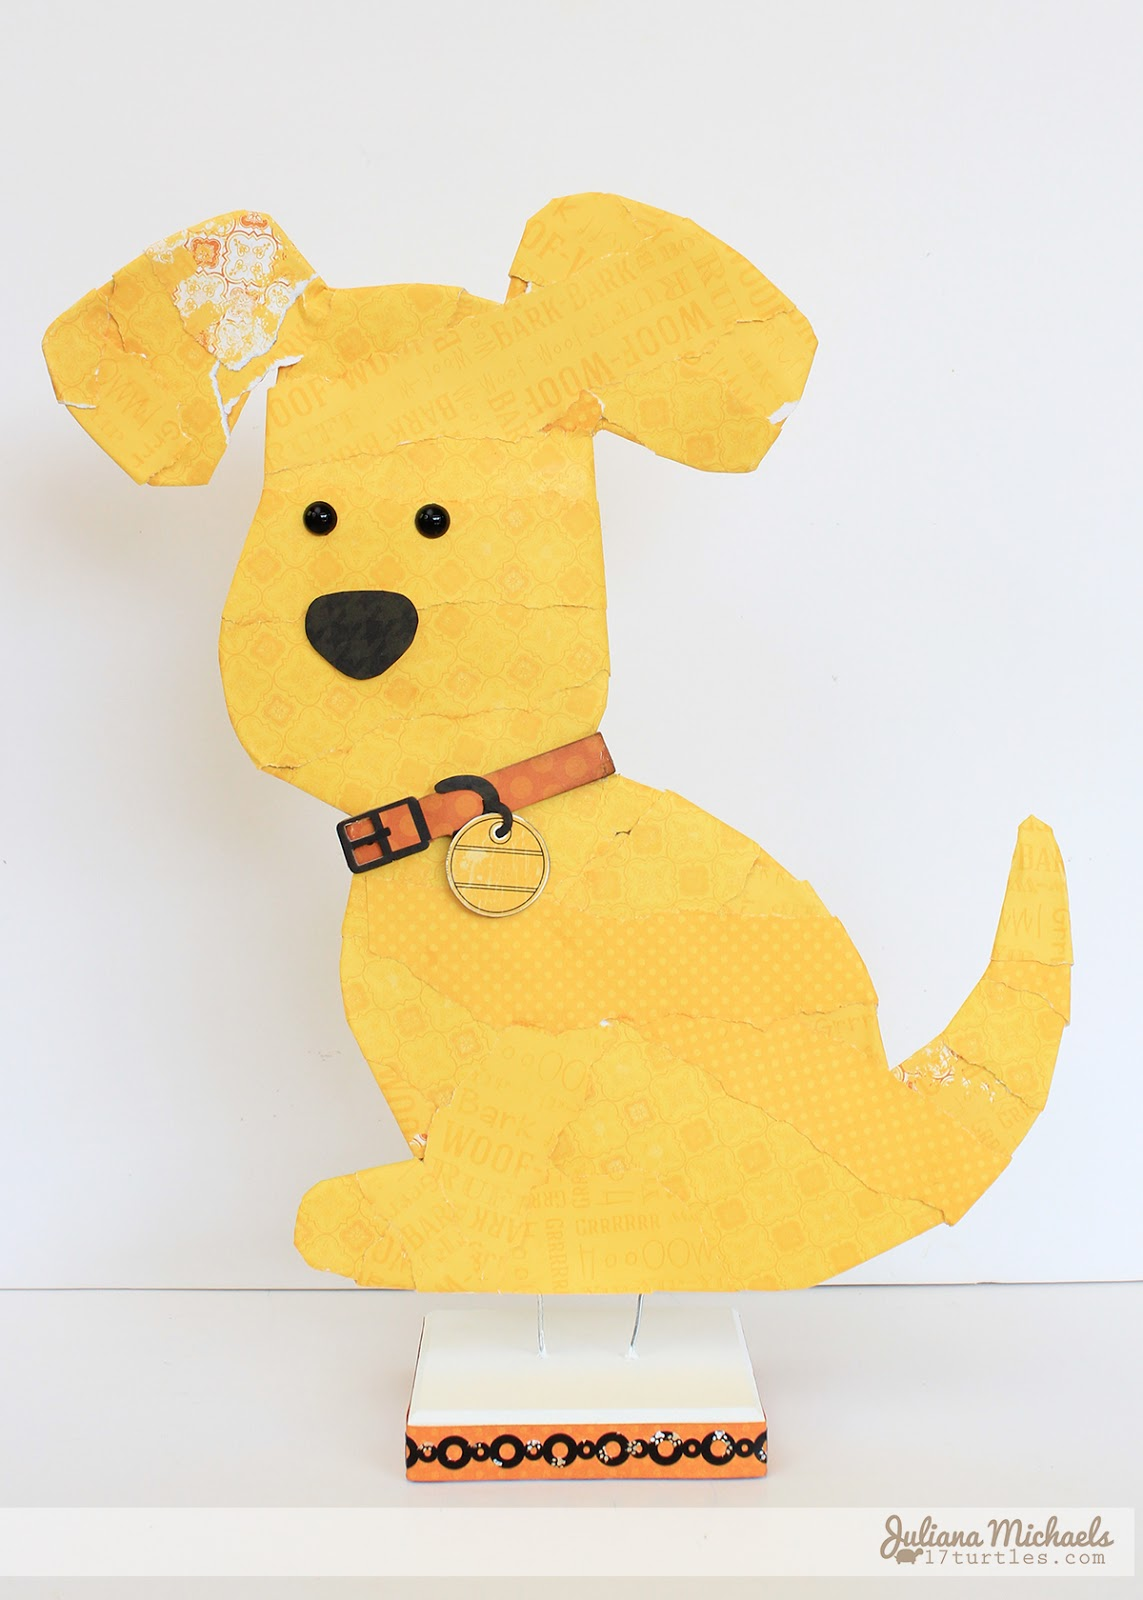 Milo MakeMyChe Juliana Michaels for BoBunny #makemyche #bobunny #happytails #dog #homedecor